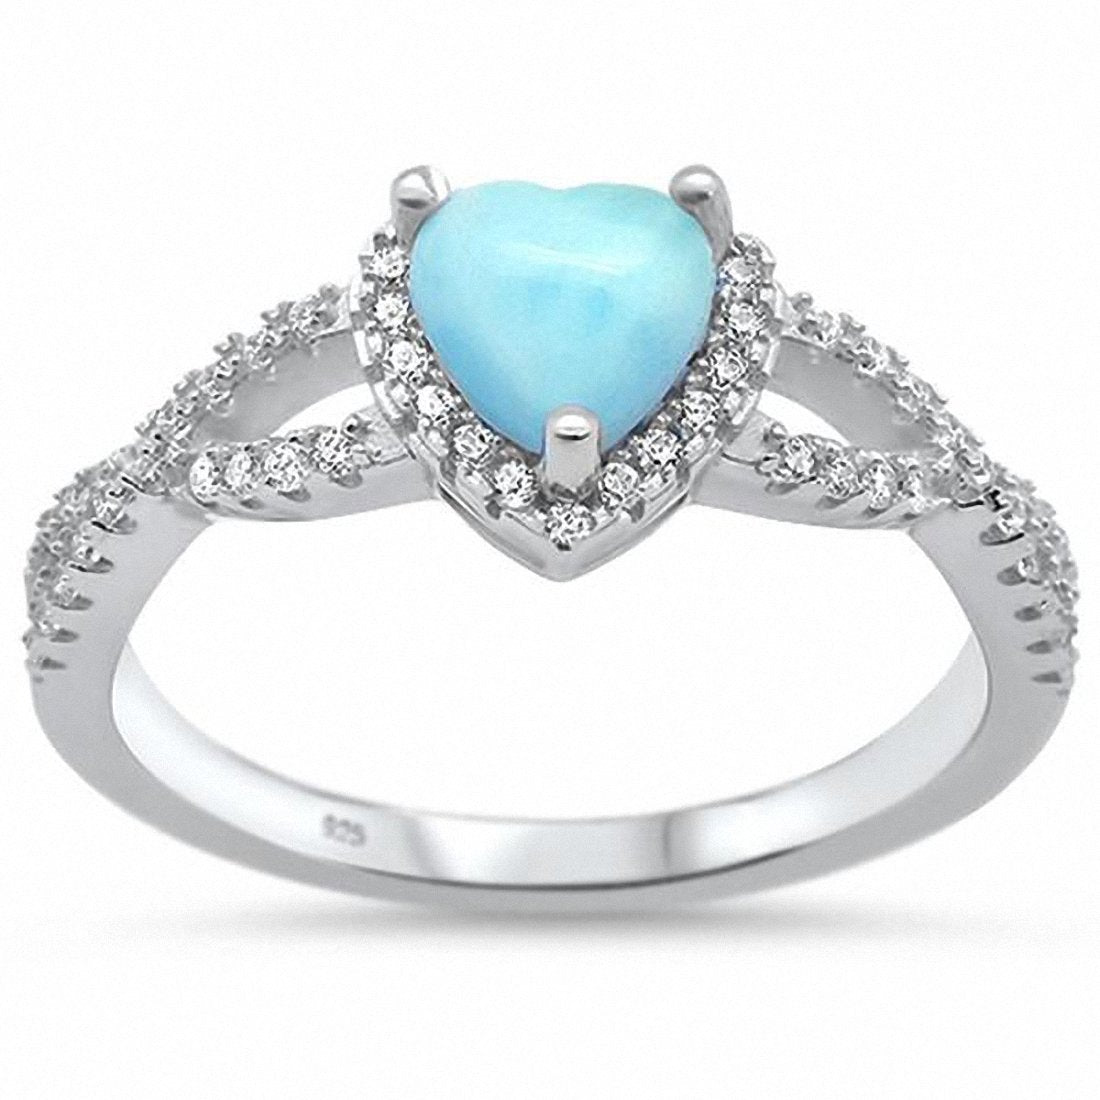 Halo Heart Promise Ring Twisted Infinity Shank Created Opal Round CZ 925 Sterling Silver Choose Color